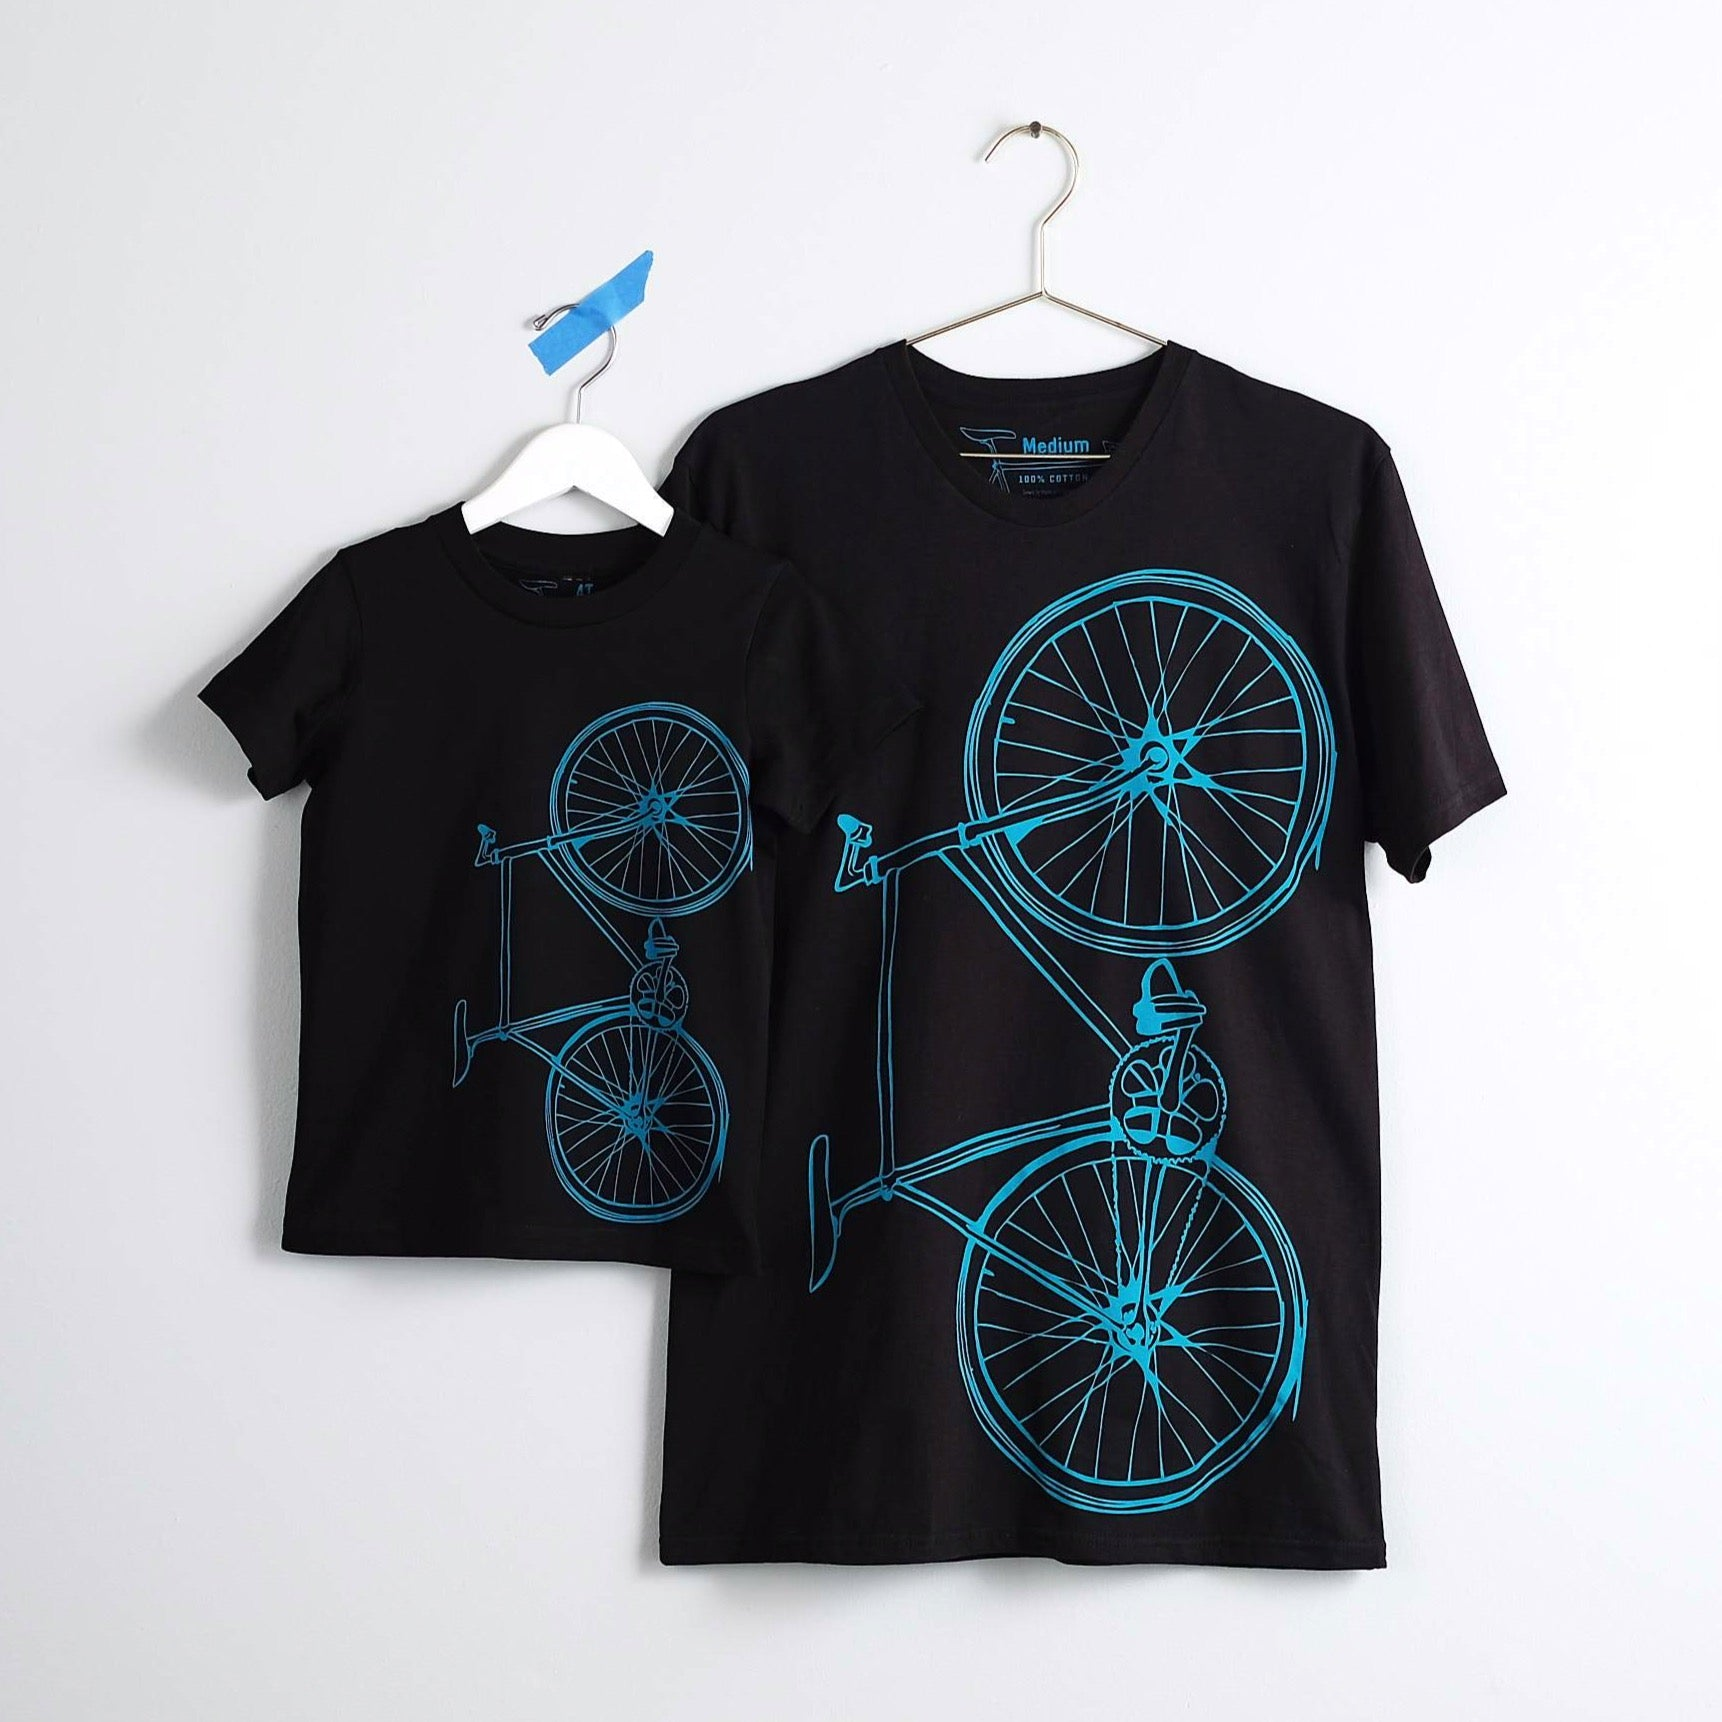 fixie bike graphic tee, father son matching teal and black cotton t-shirt